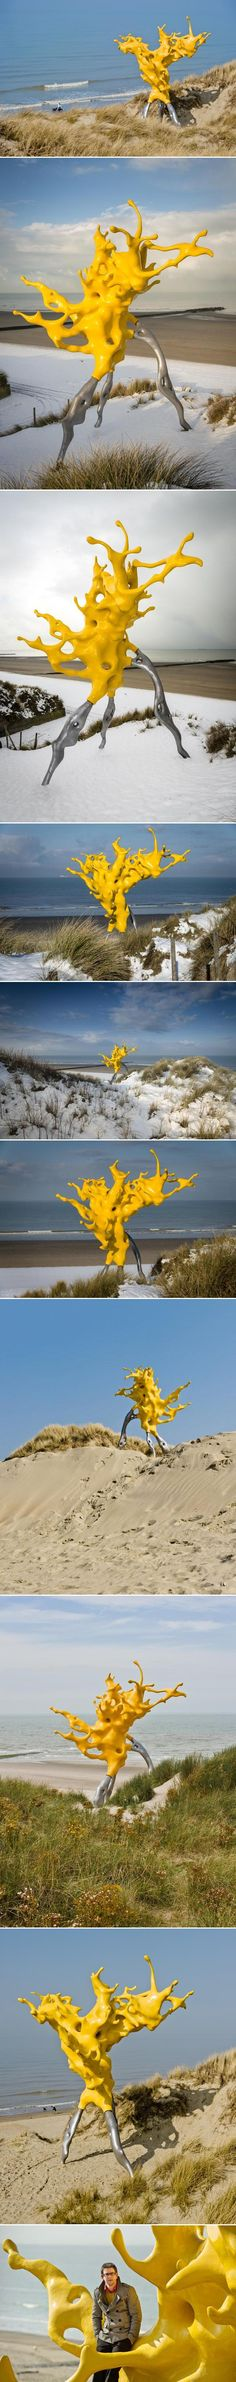 Artist Nick Ervinck created this sculpture work using computeraided designs. The work is not clearly defined but points in different directions. The imagery used is clearly inspired by macro photographic images of splashing water, and thus sculpturally interprets the encounter between nature and technology. http://en.51artwork.com/nick-ervinck-olnetop/